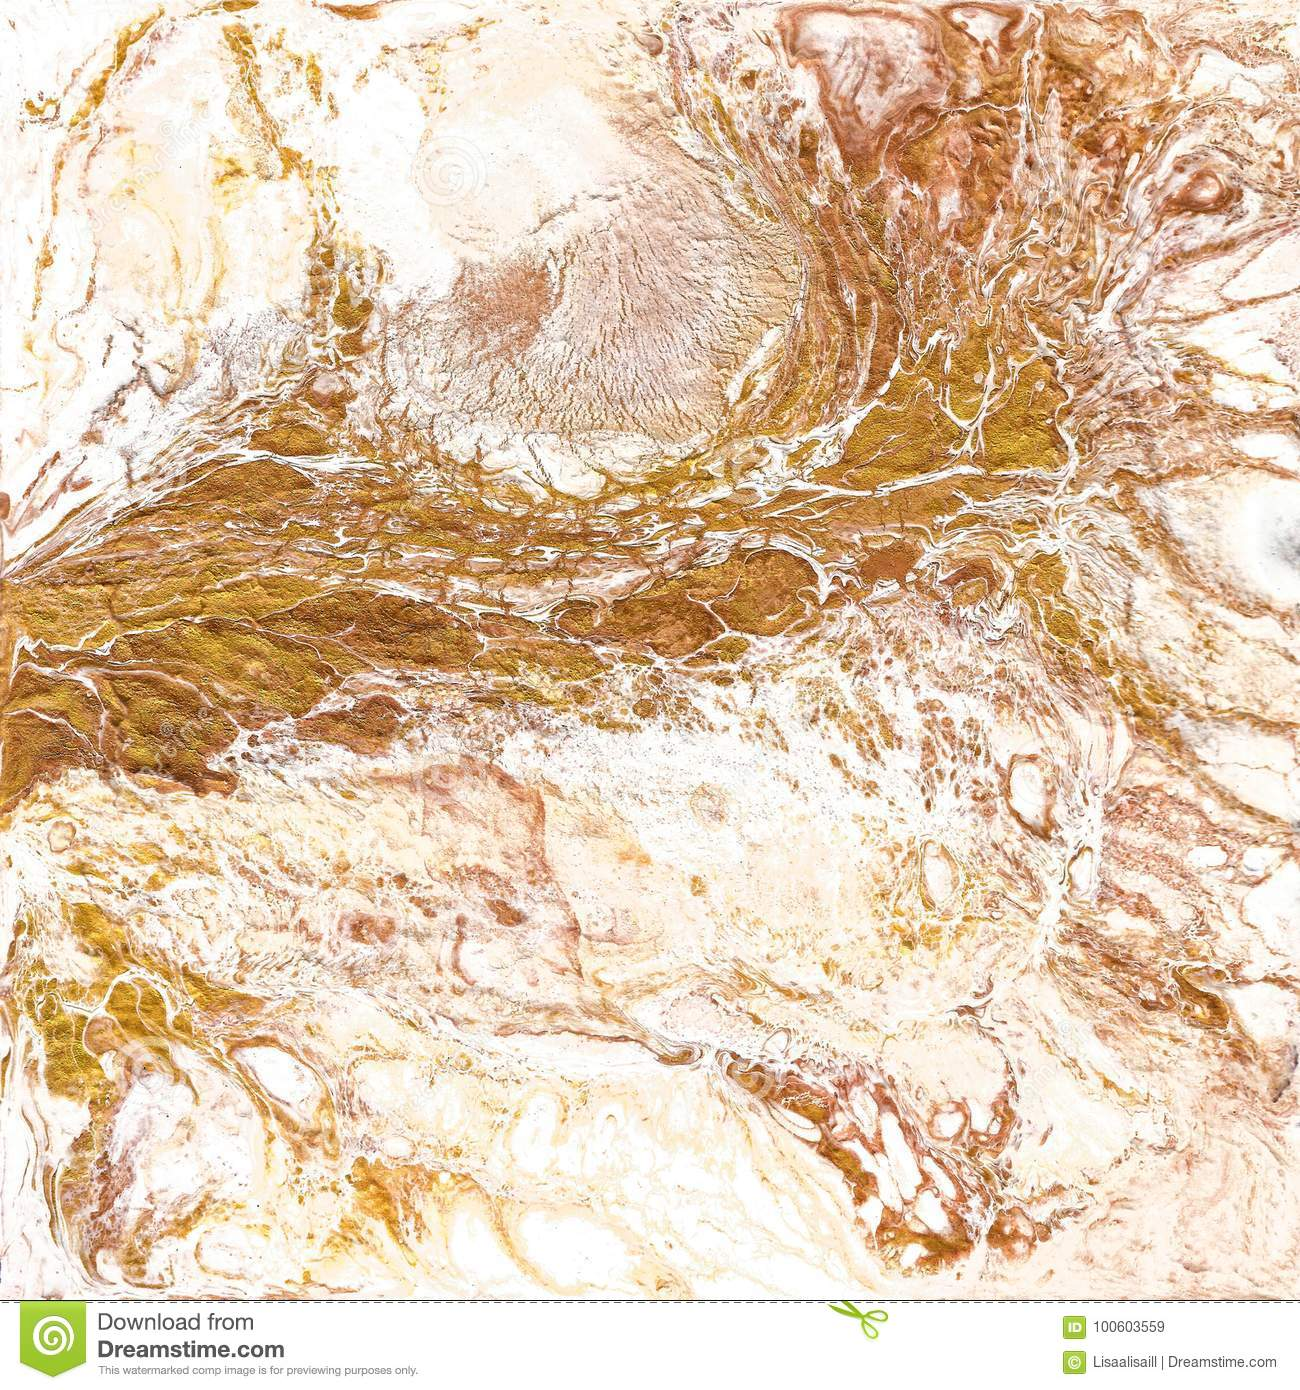 Hand draw painting with marbled texture and gold and bronze colors golden marble background with white colors